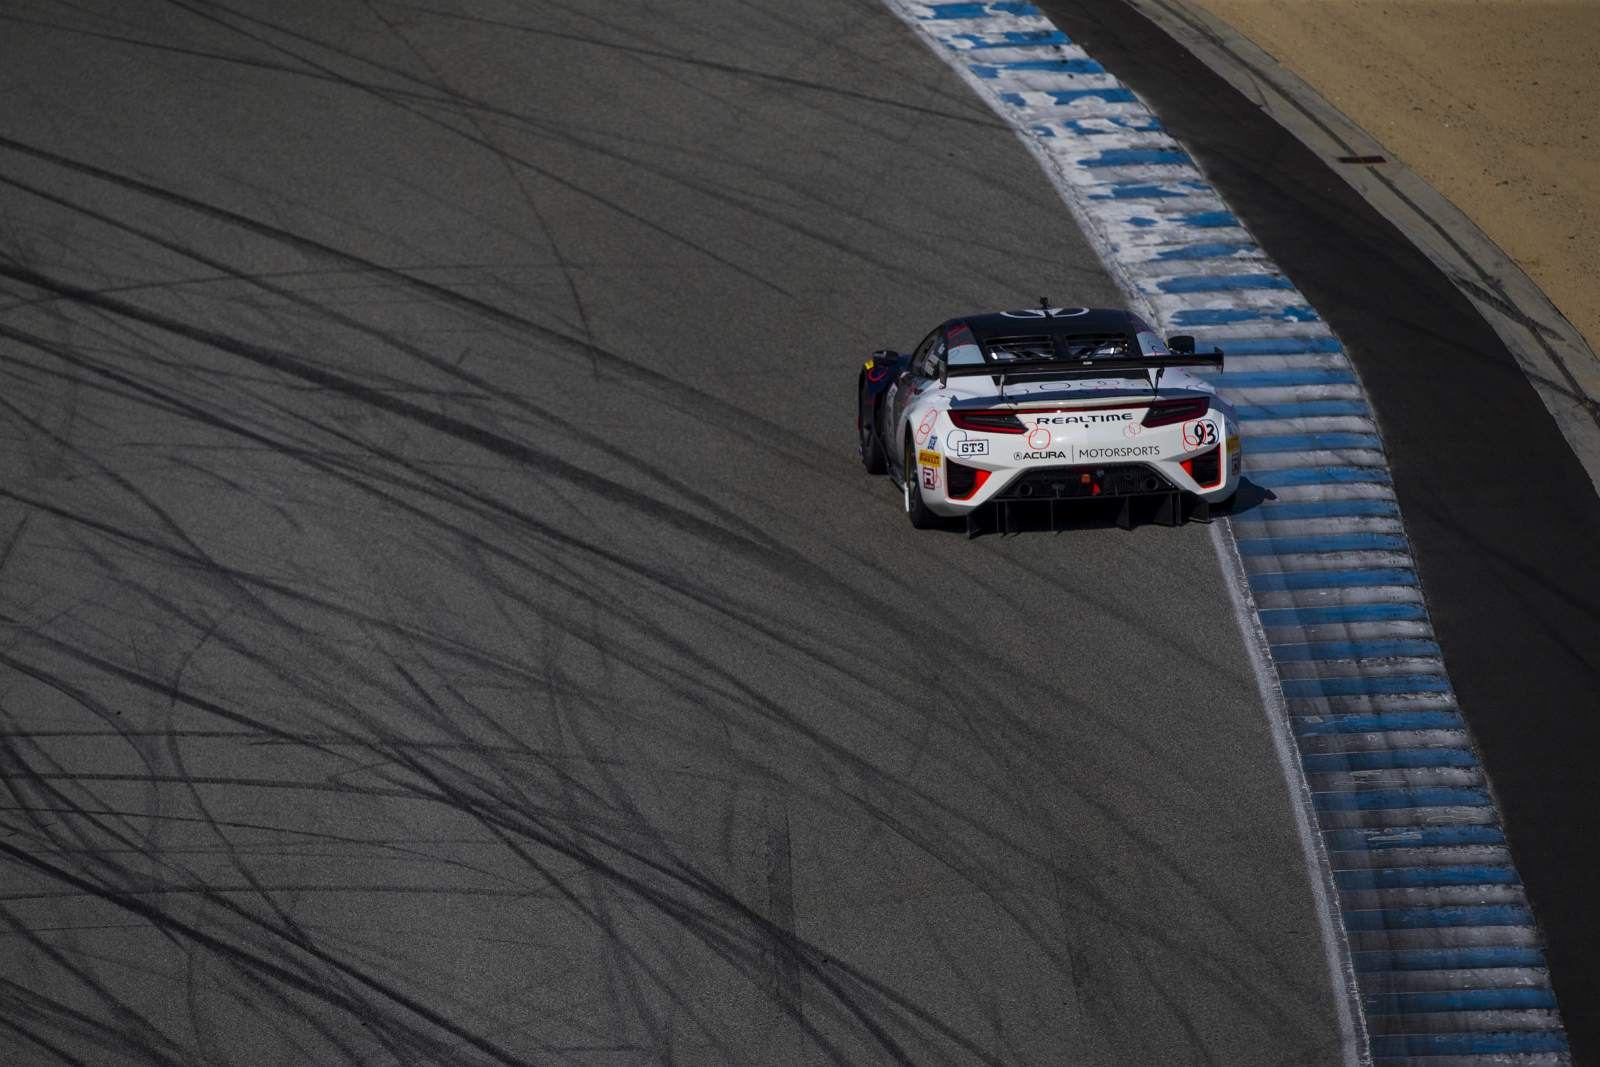 peter-kox-realtime-racing-pirelli-world-challenge-california-003